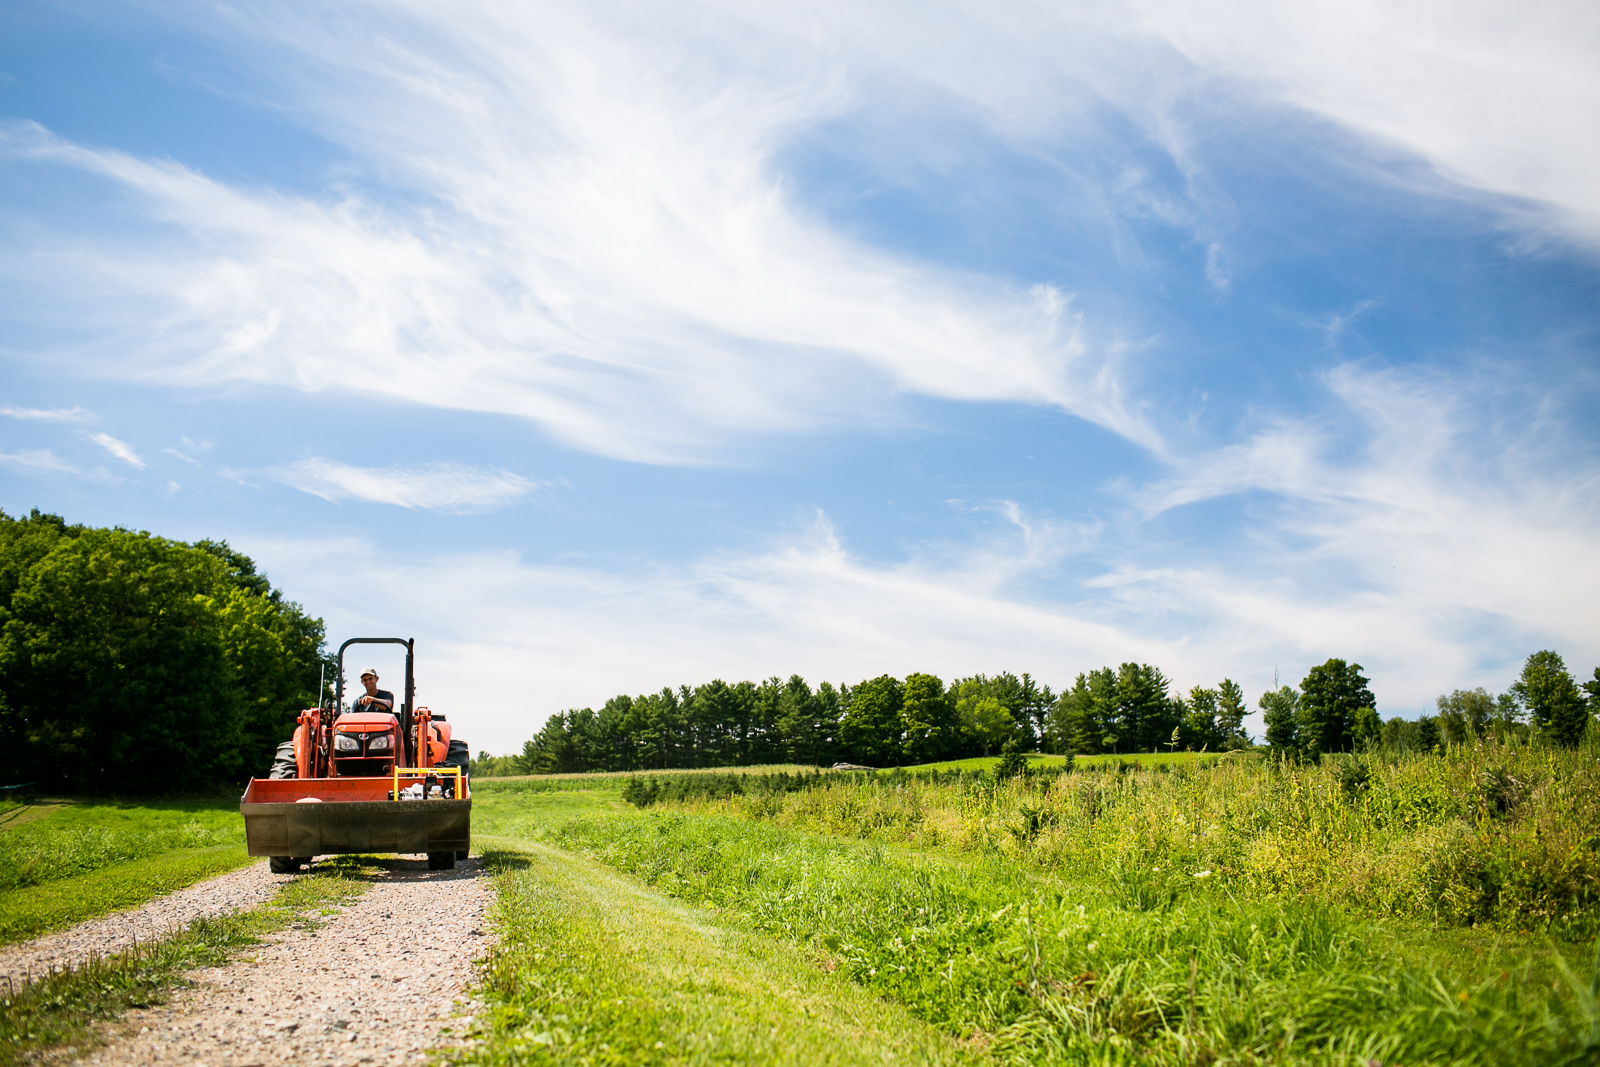 Mike Isham drives his tractor at Isham Family Farm, a diversified farm in Williston, Vermont, on Tuesday, August 9, 2016.